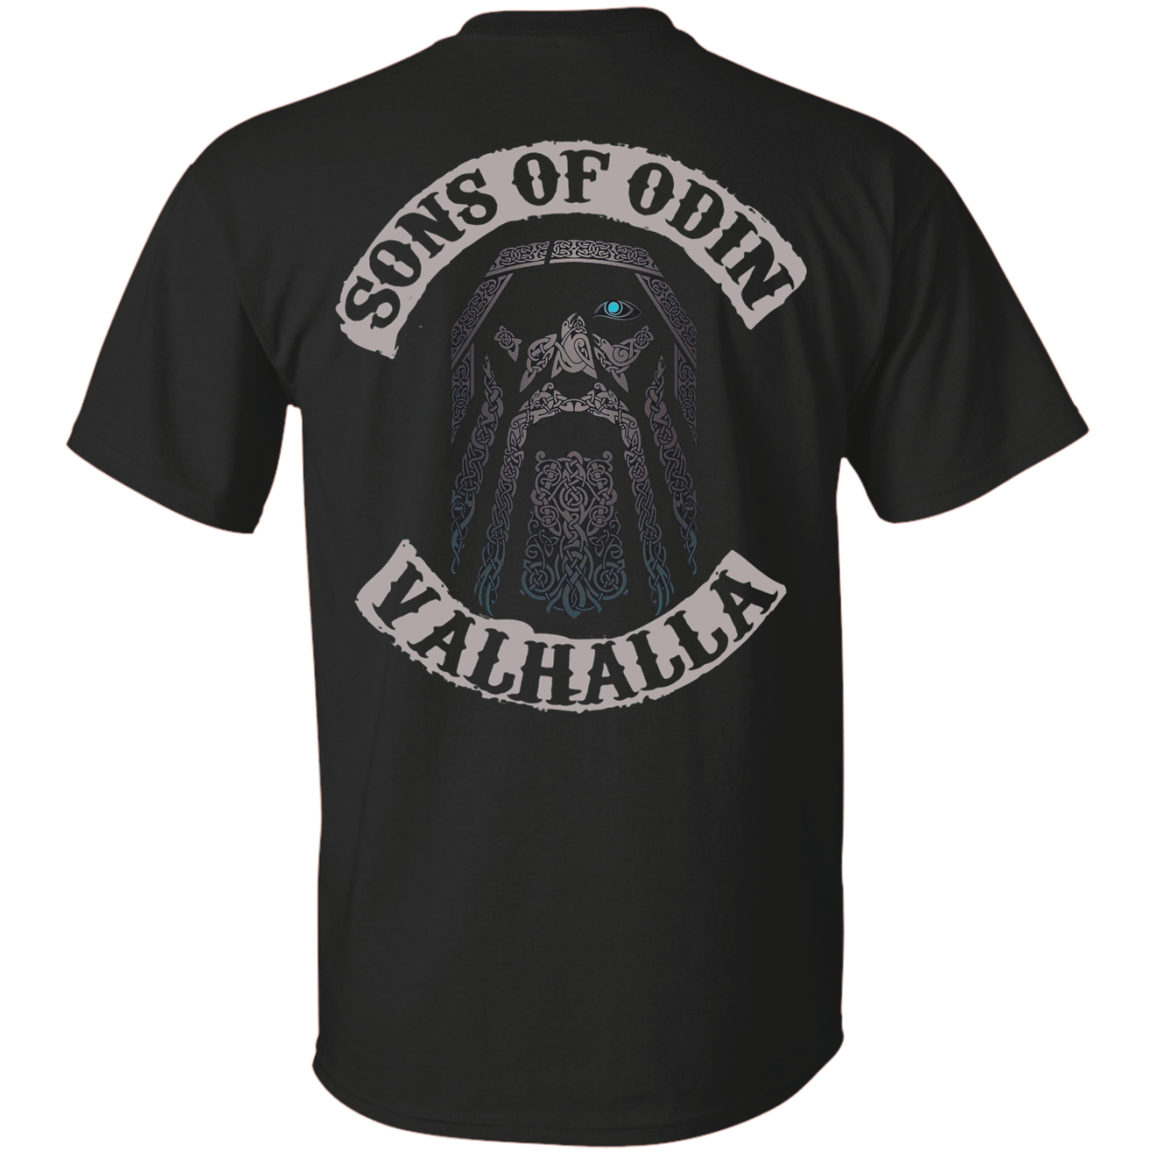 Viking clothing - vikings apparel-Son Of Odin - Valhalla – Tee2be Store